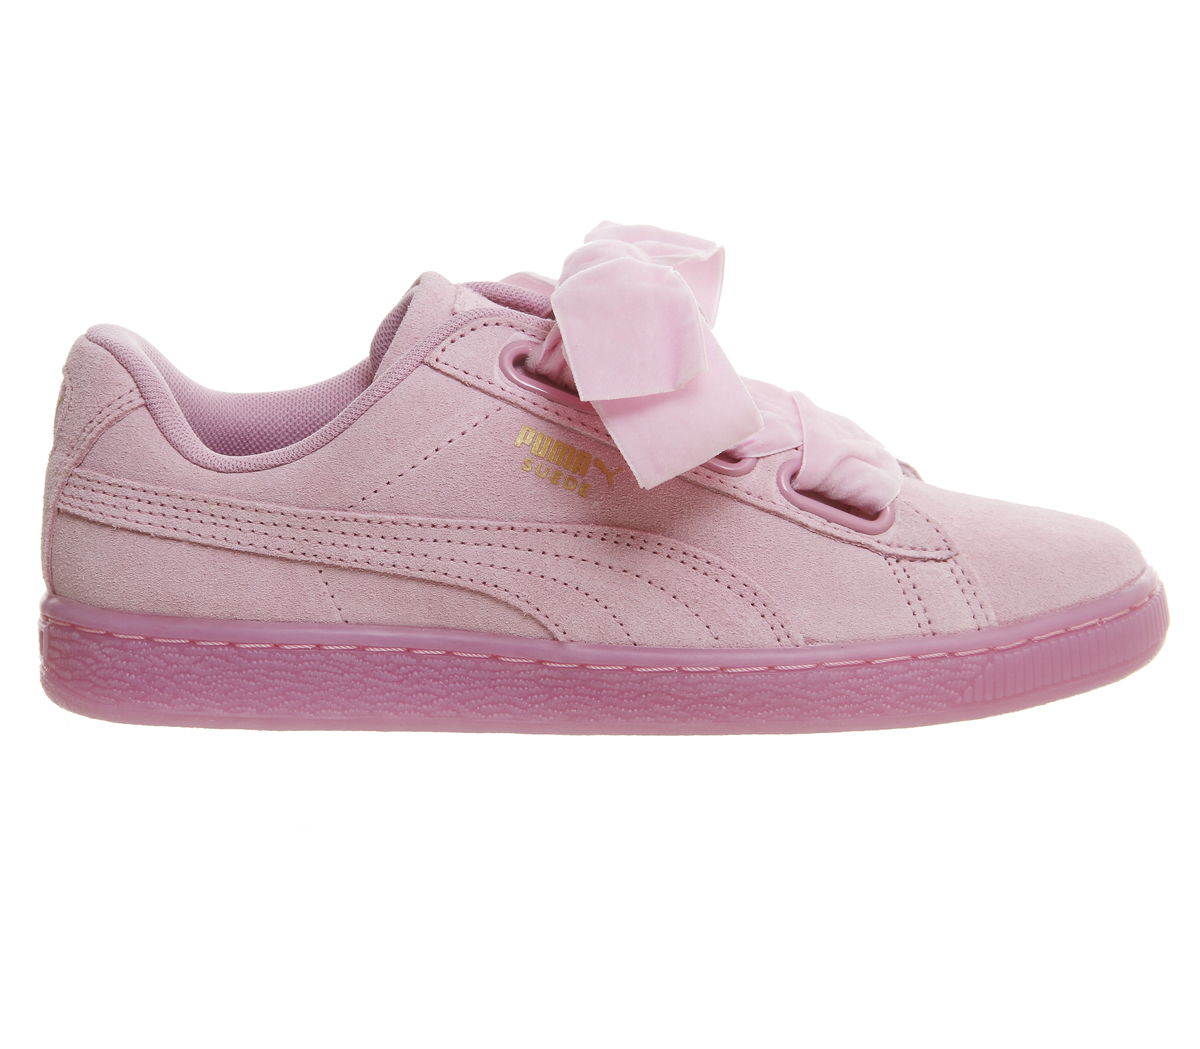 PUMA Suede Heart Satin Sneaker in rosa tg. 38/UK 5 NUOVO